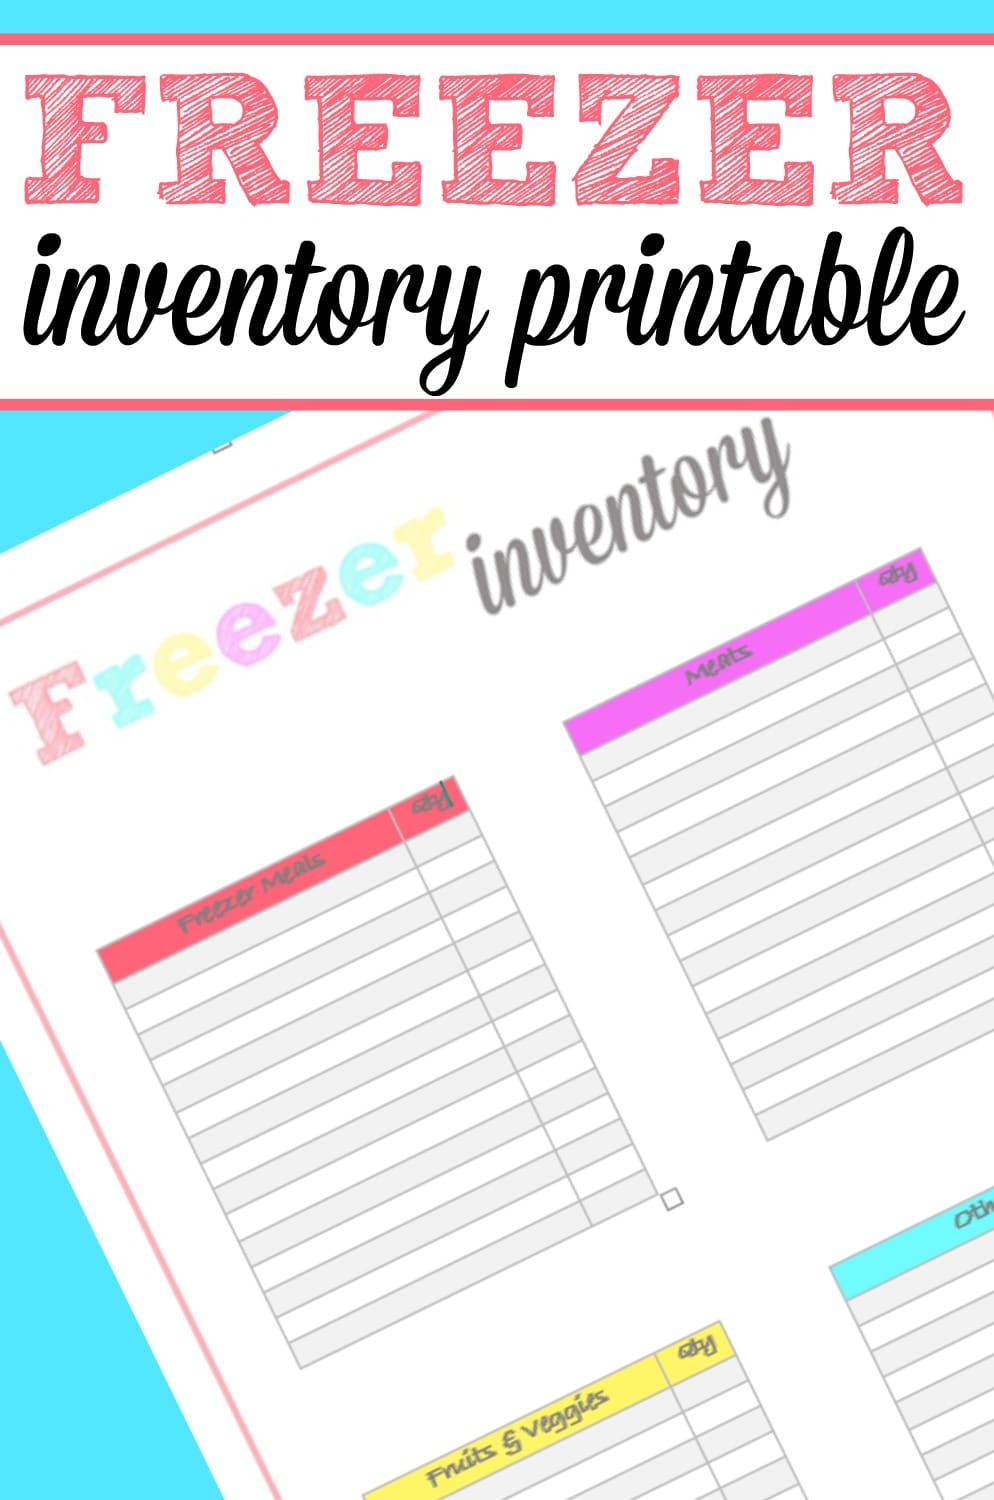 image relating to Freezer Inventory Printable referred to as Freezer Stock Printable - Frugally Blonde